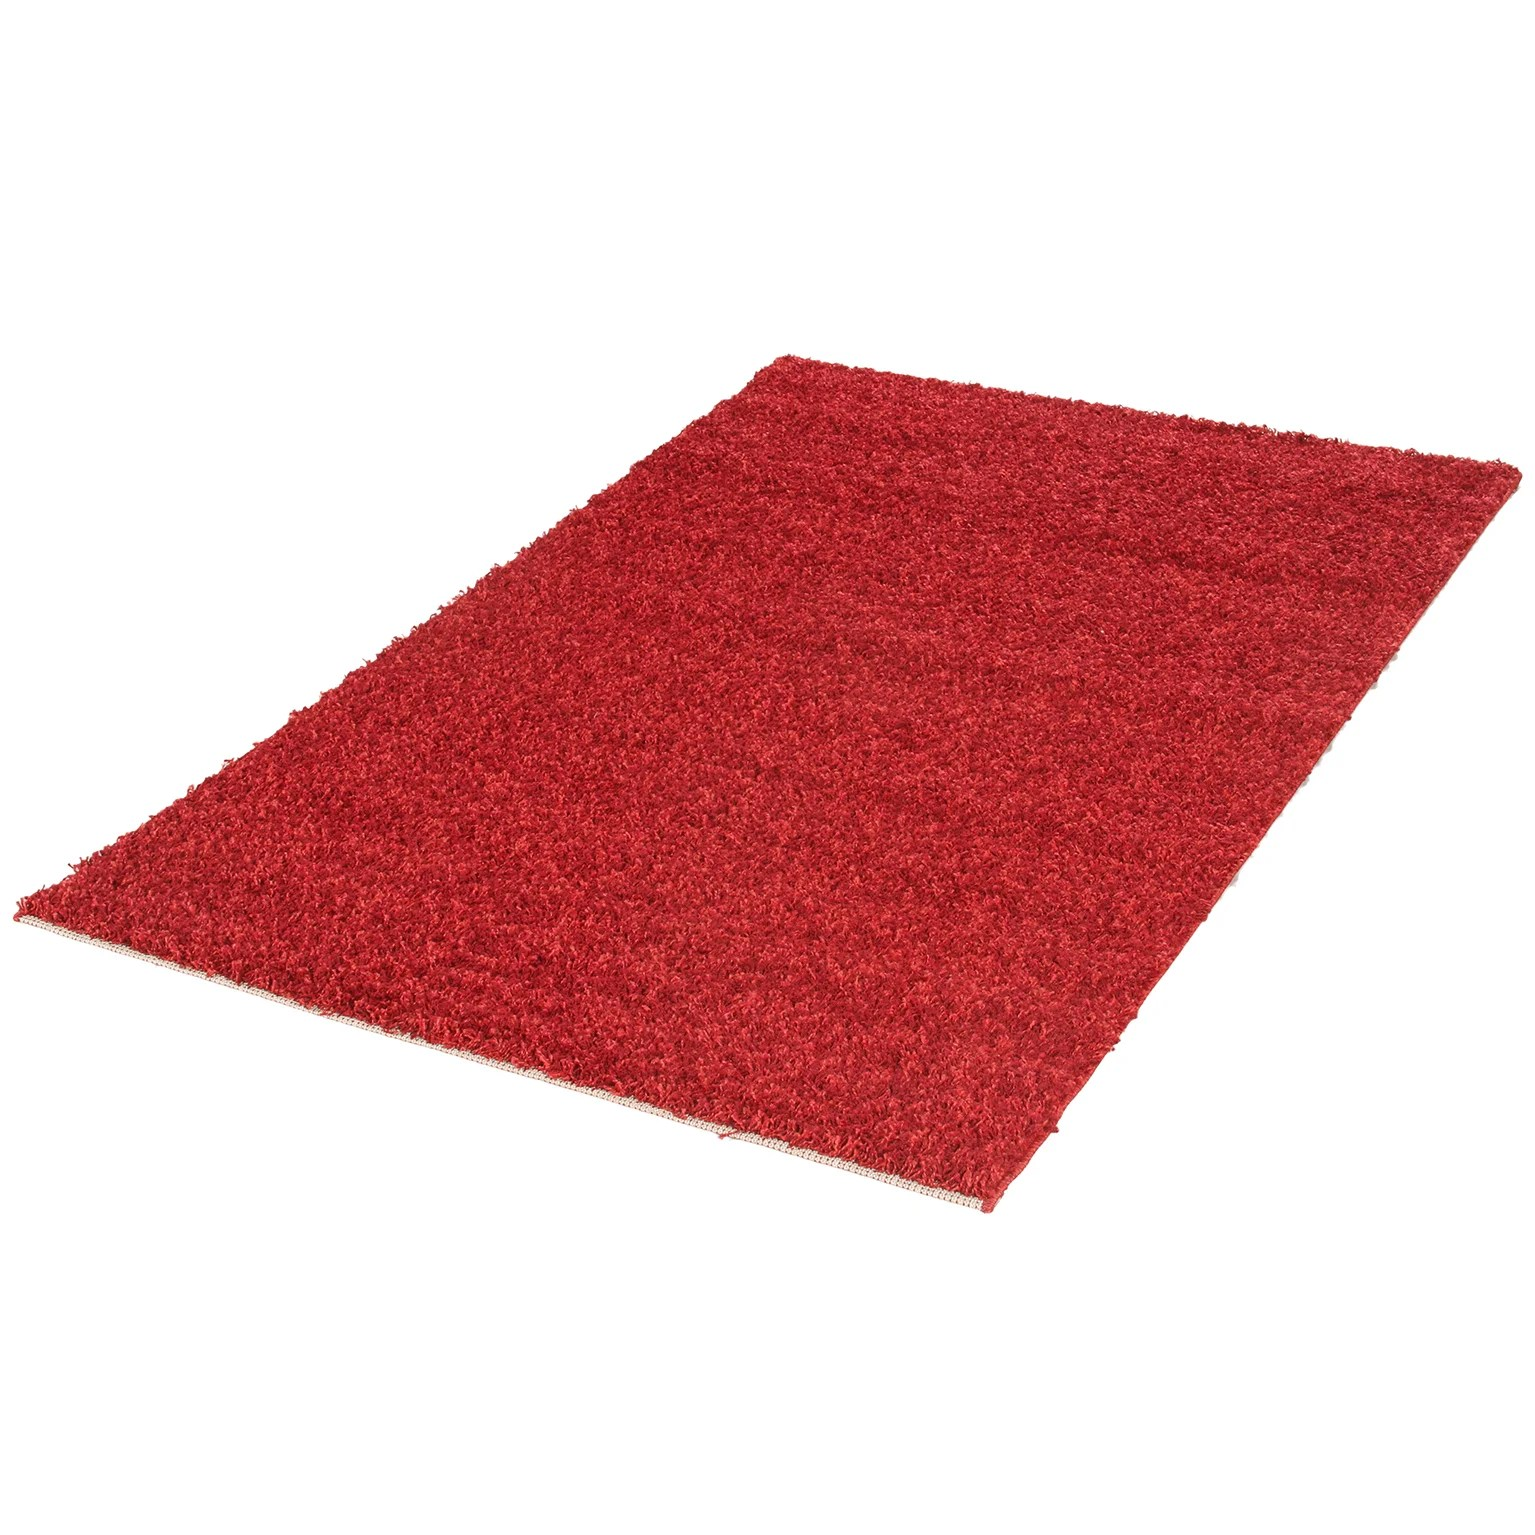 tapis rouge rectangulaire l 80 curly leroy merlin